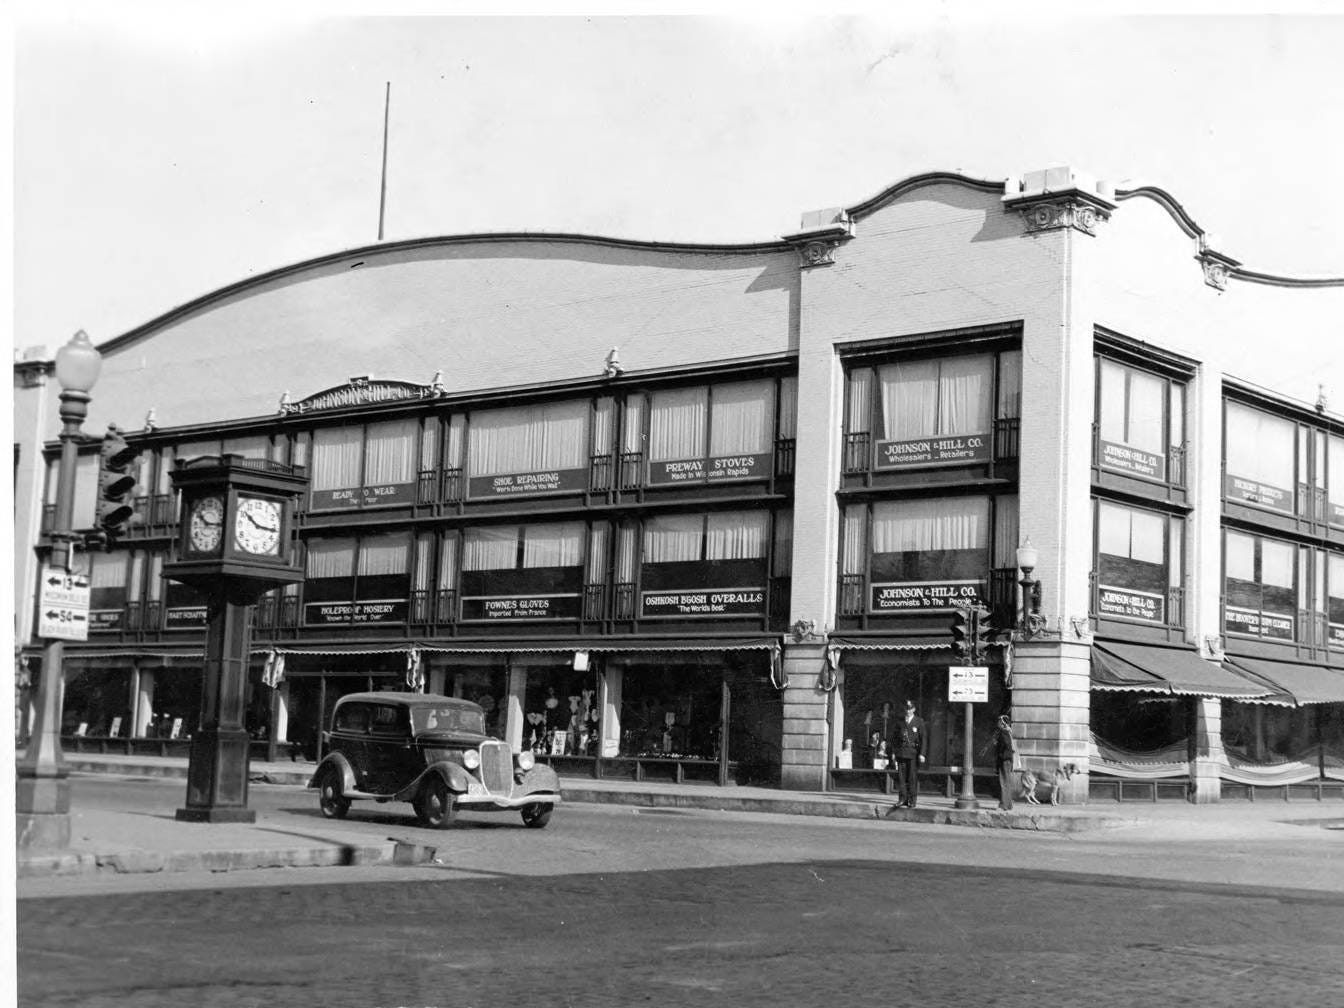 The Johnson & Hill Department store was built in 1912. This photo was taken in about 1934.